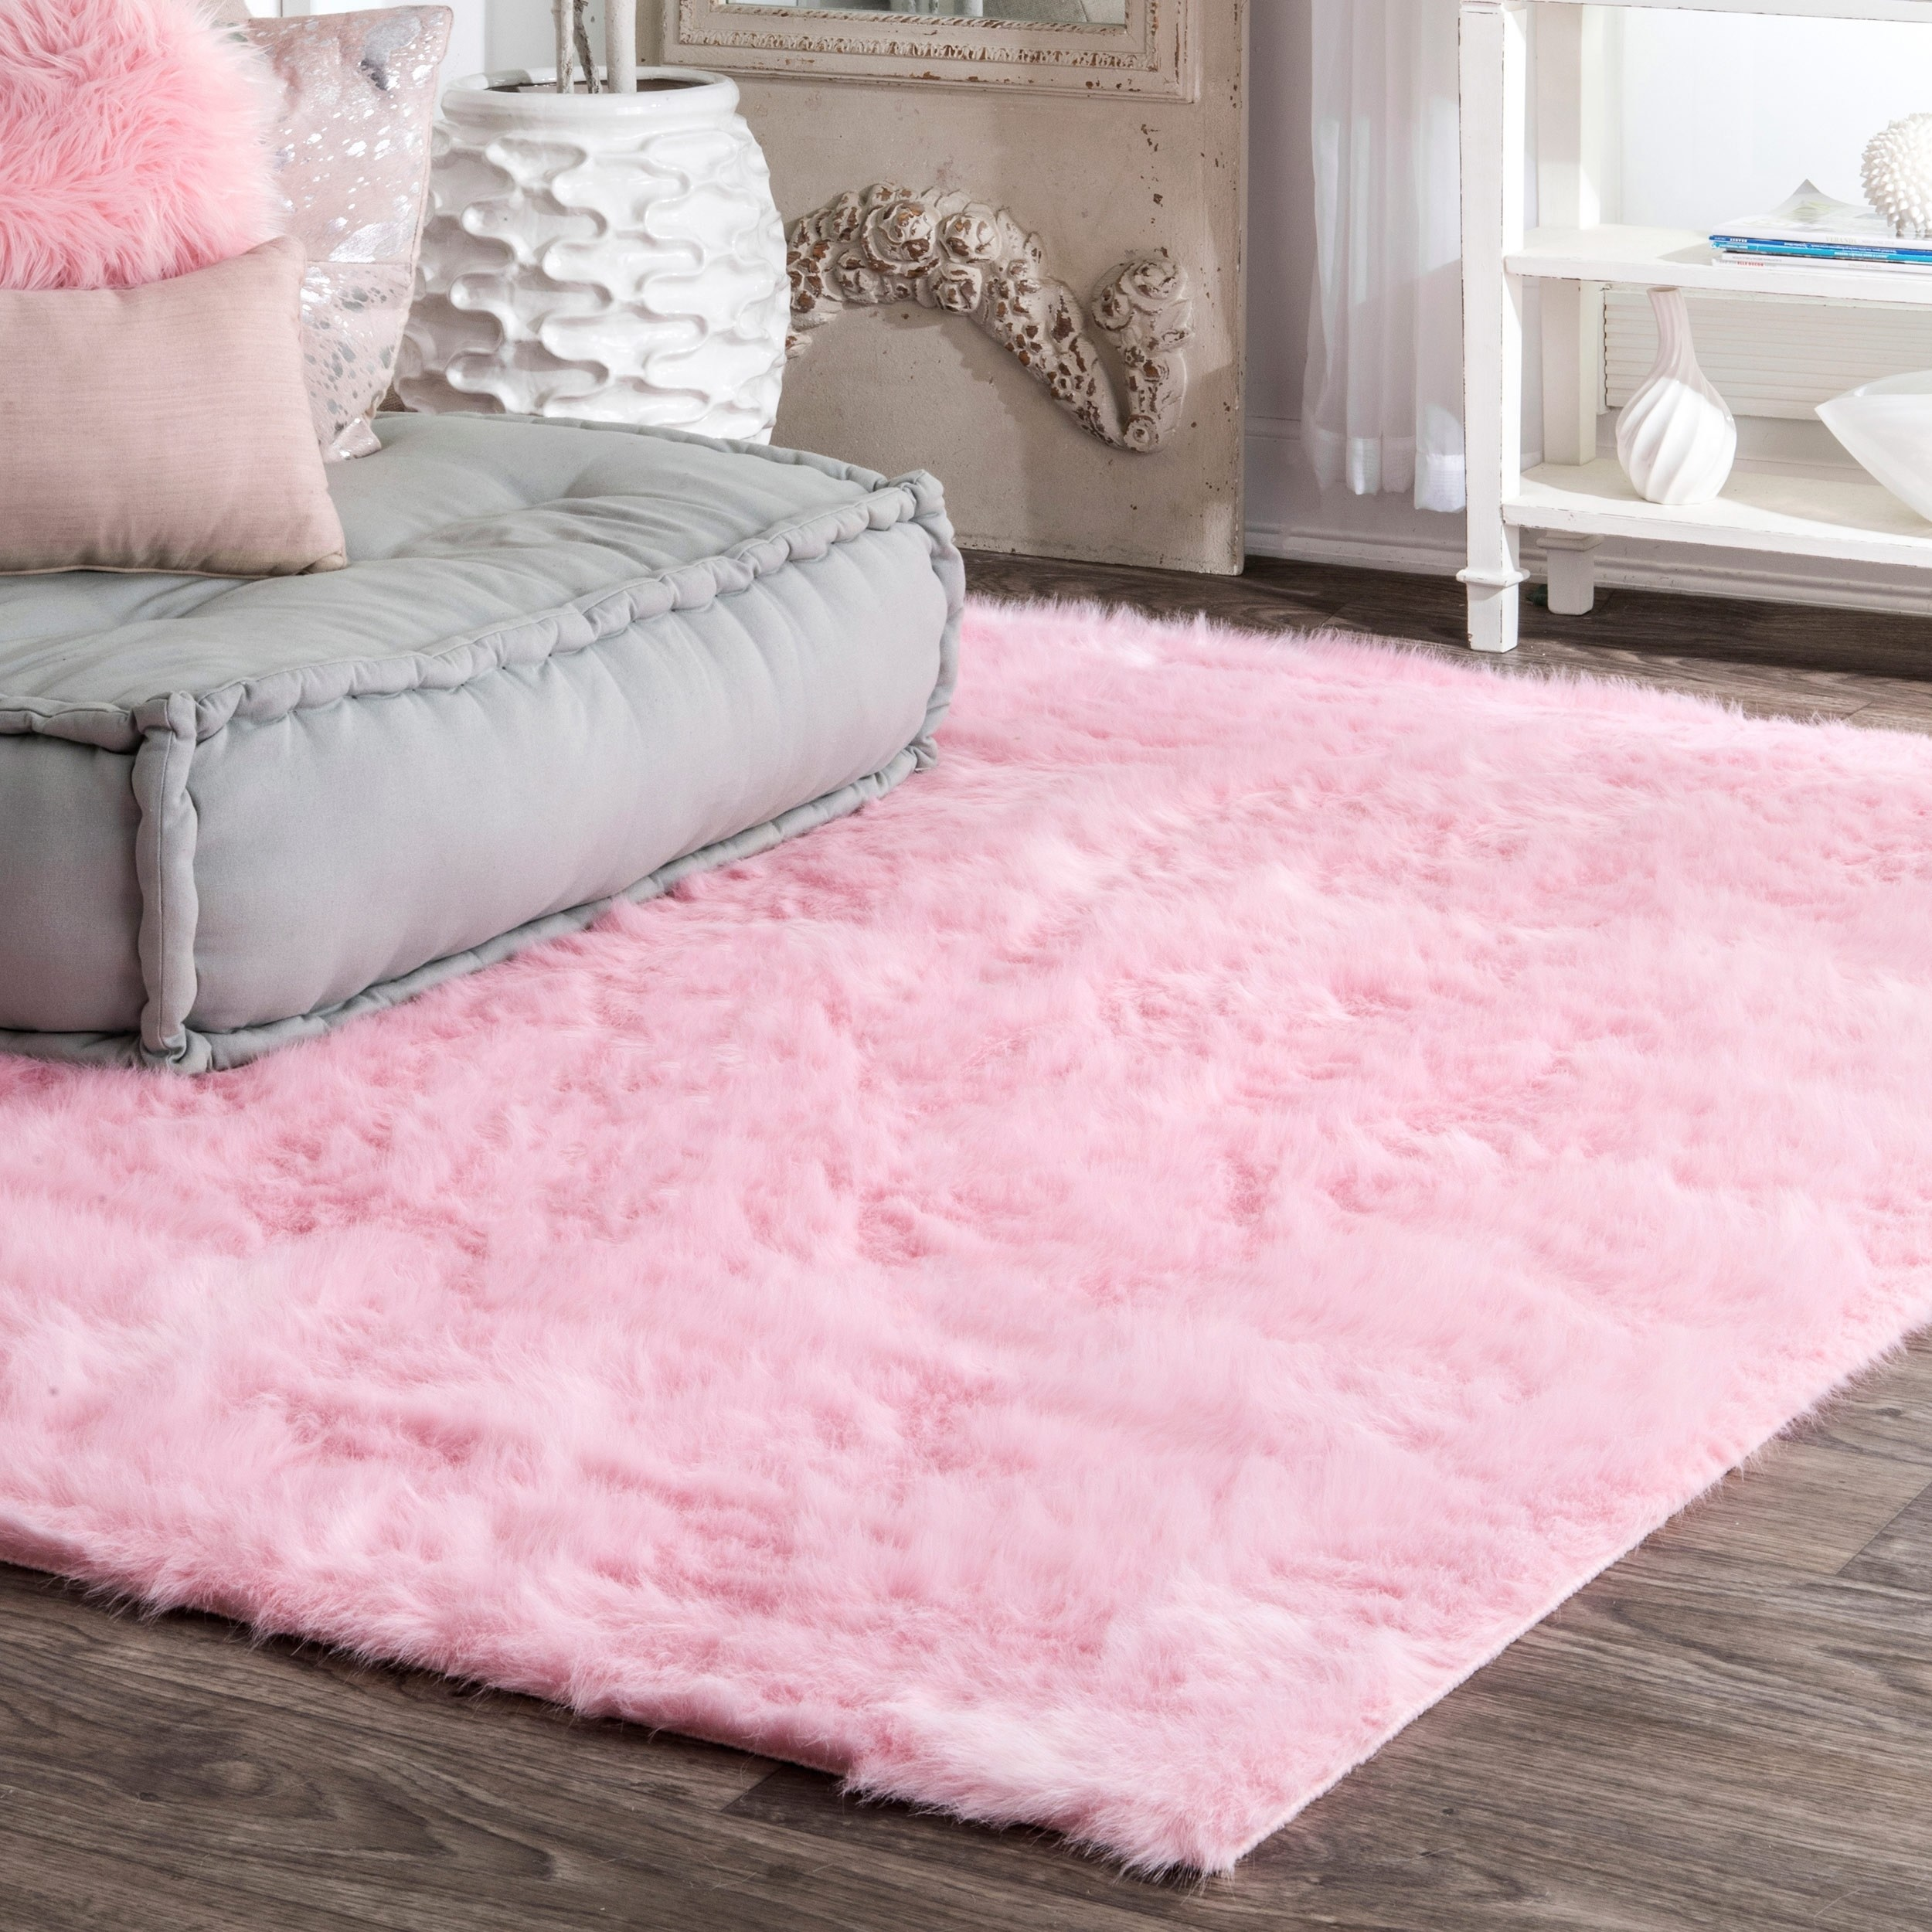 Silver orchid russell cozy soft and plush faux sheepskin shag kids